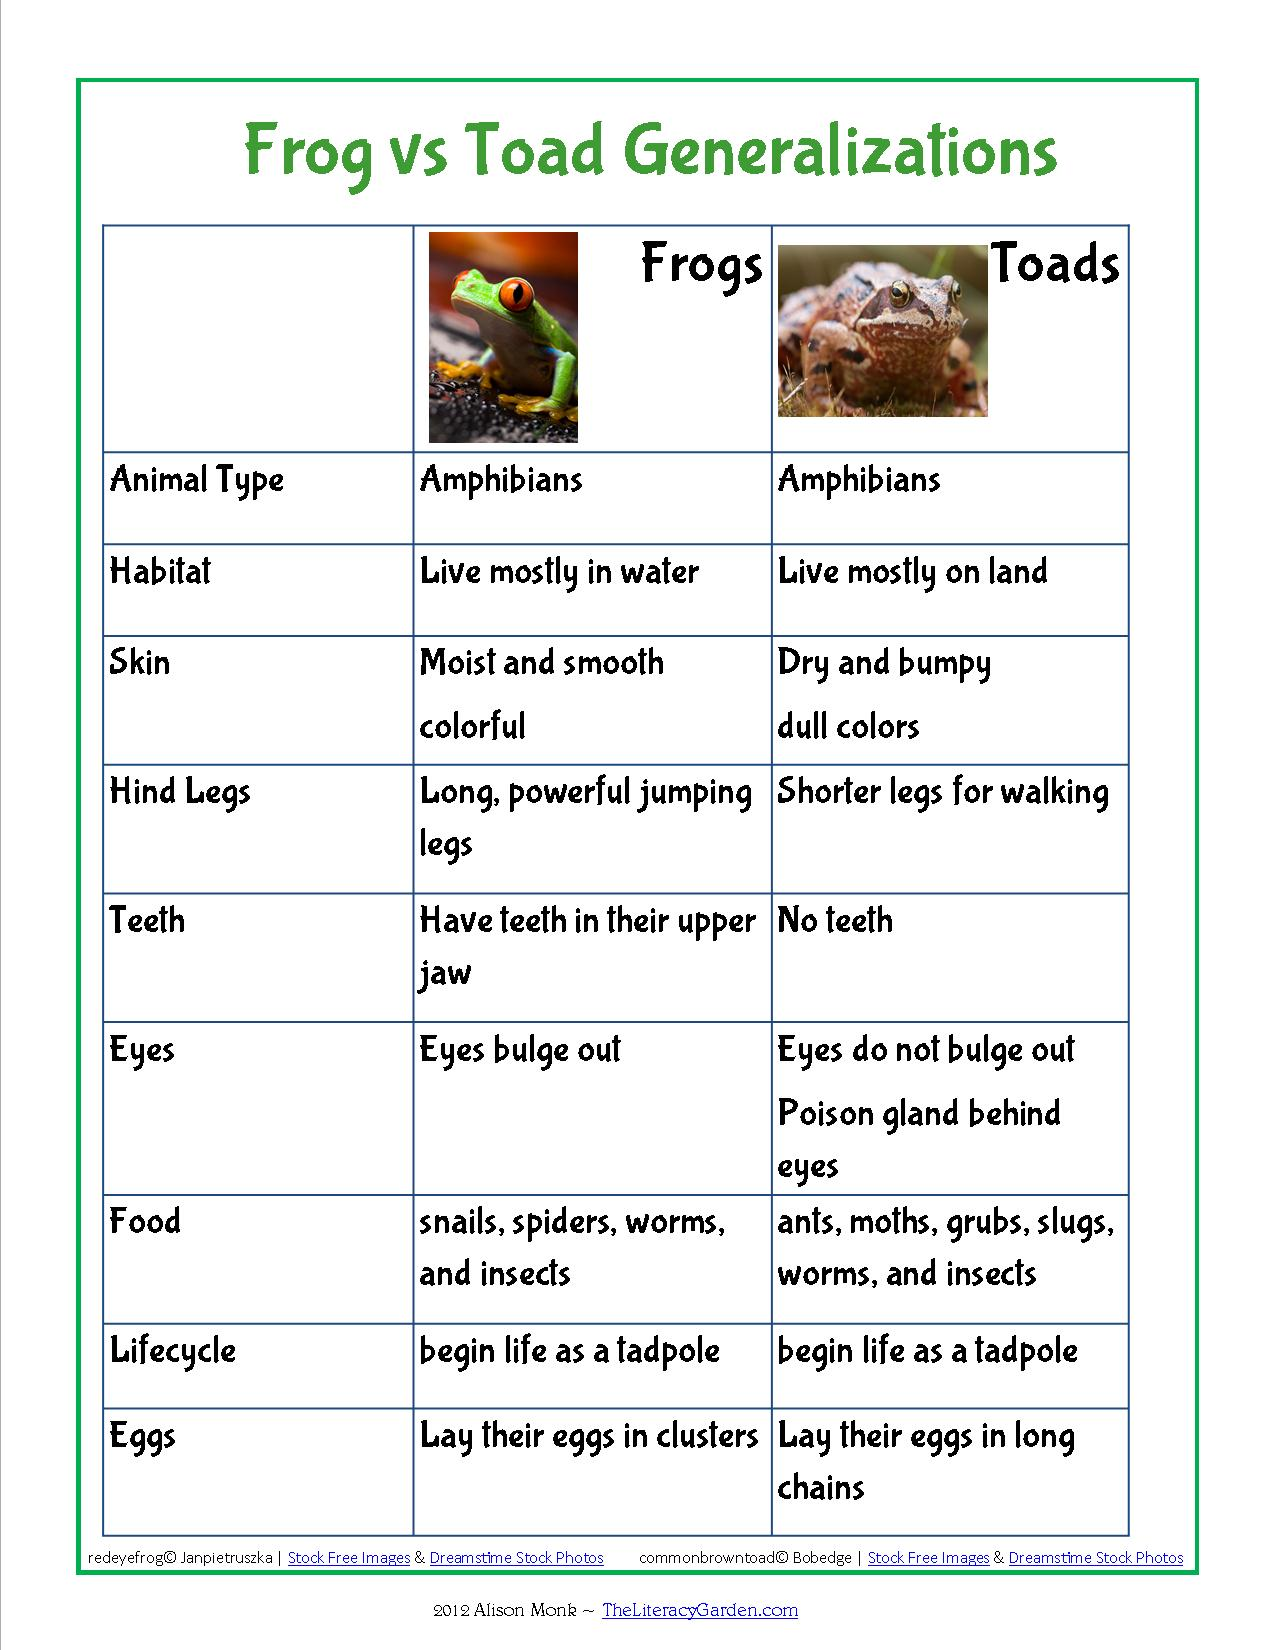 Quotes From Frog And Toad  Quotesgram